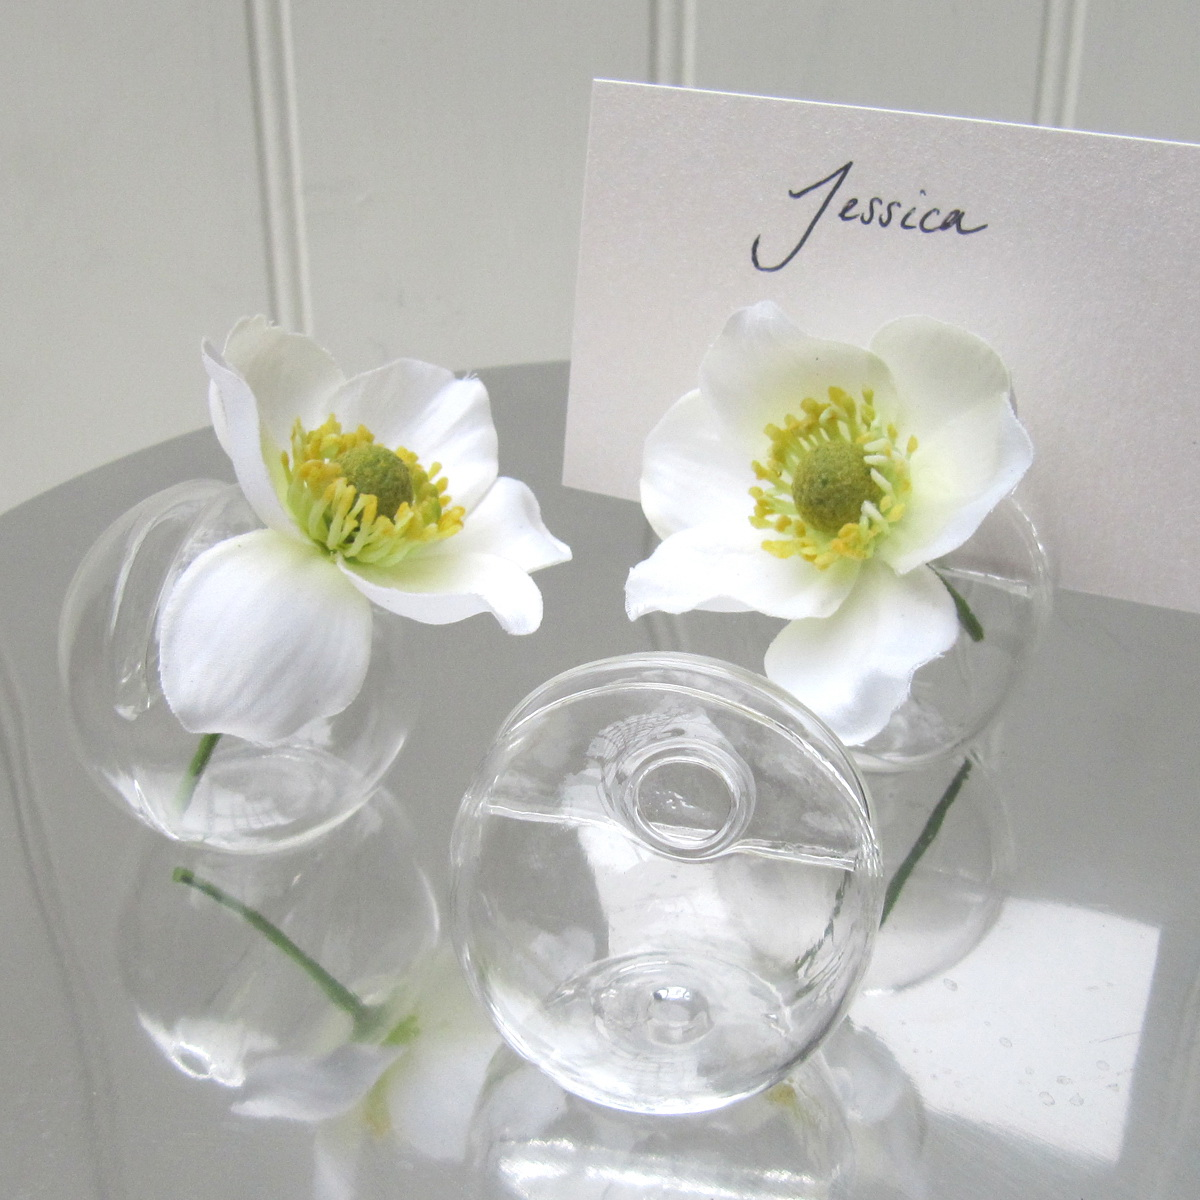 place card holders wedding place cards Name Place Vases Place Card Holder